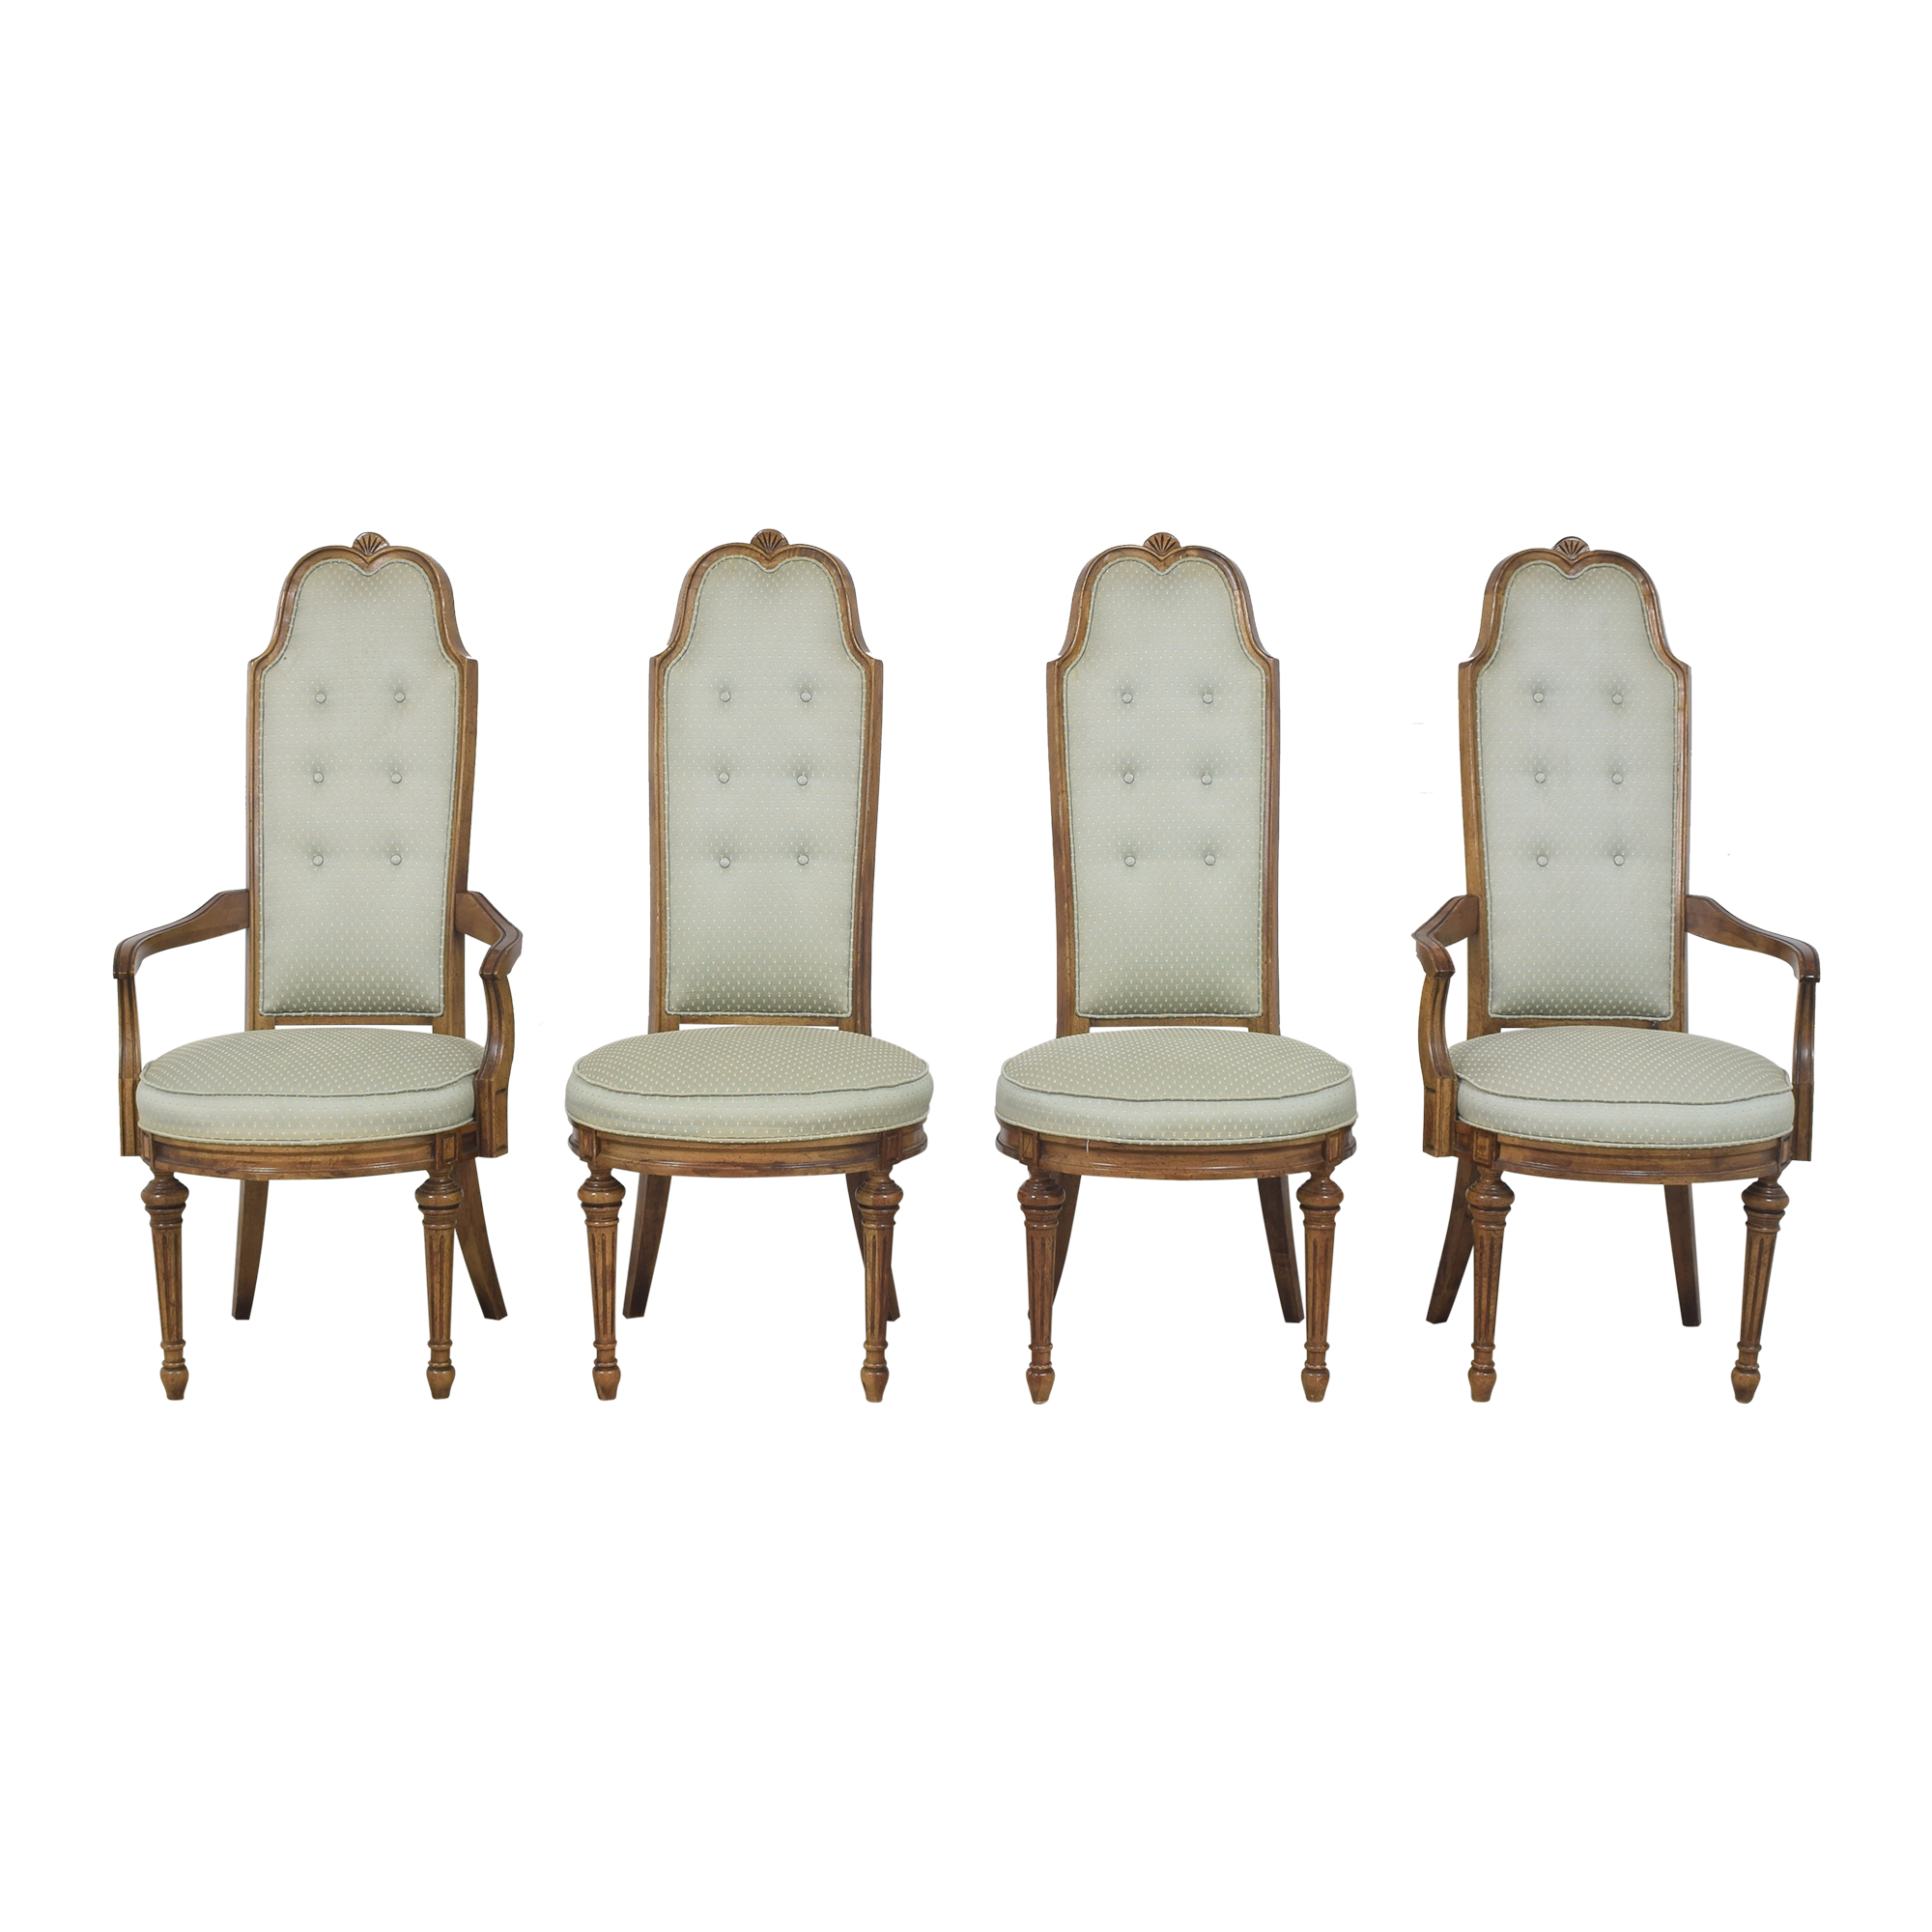 buy High Back Tufted Dining Chairs   Dining Chairs